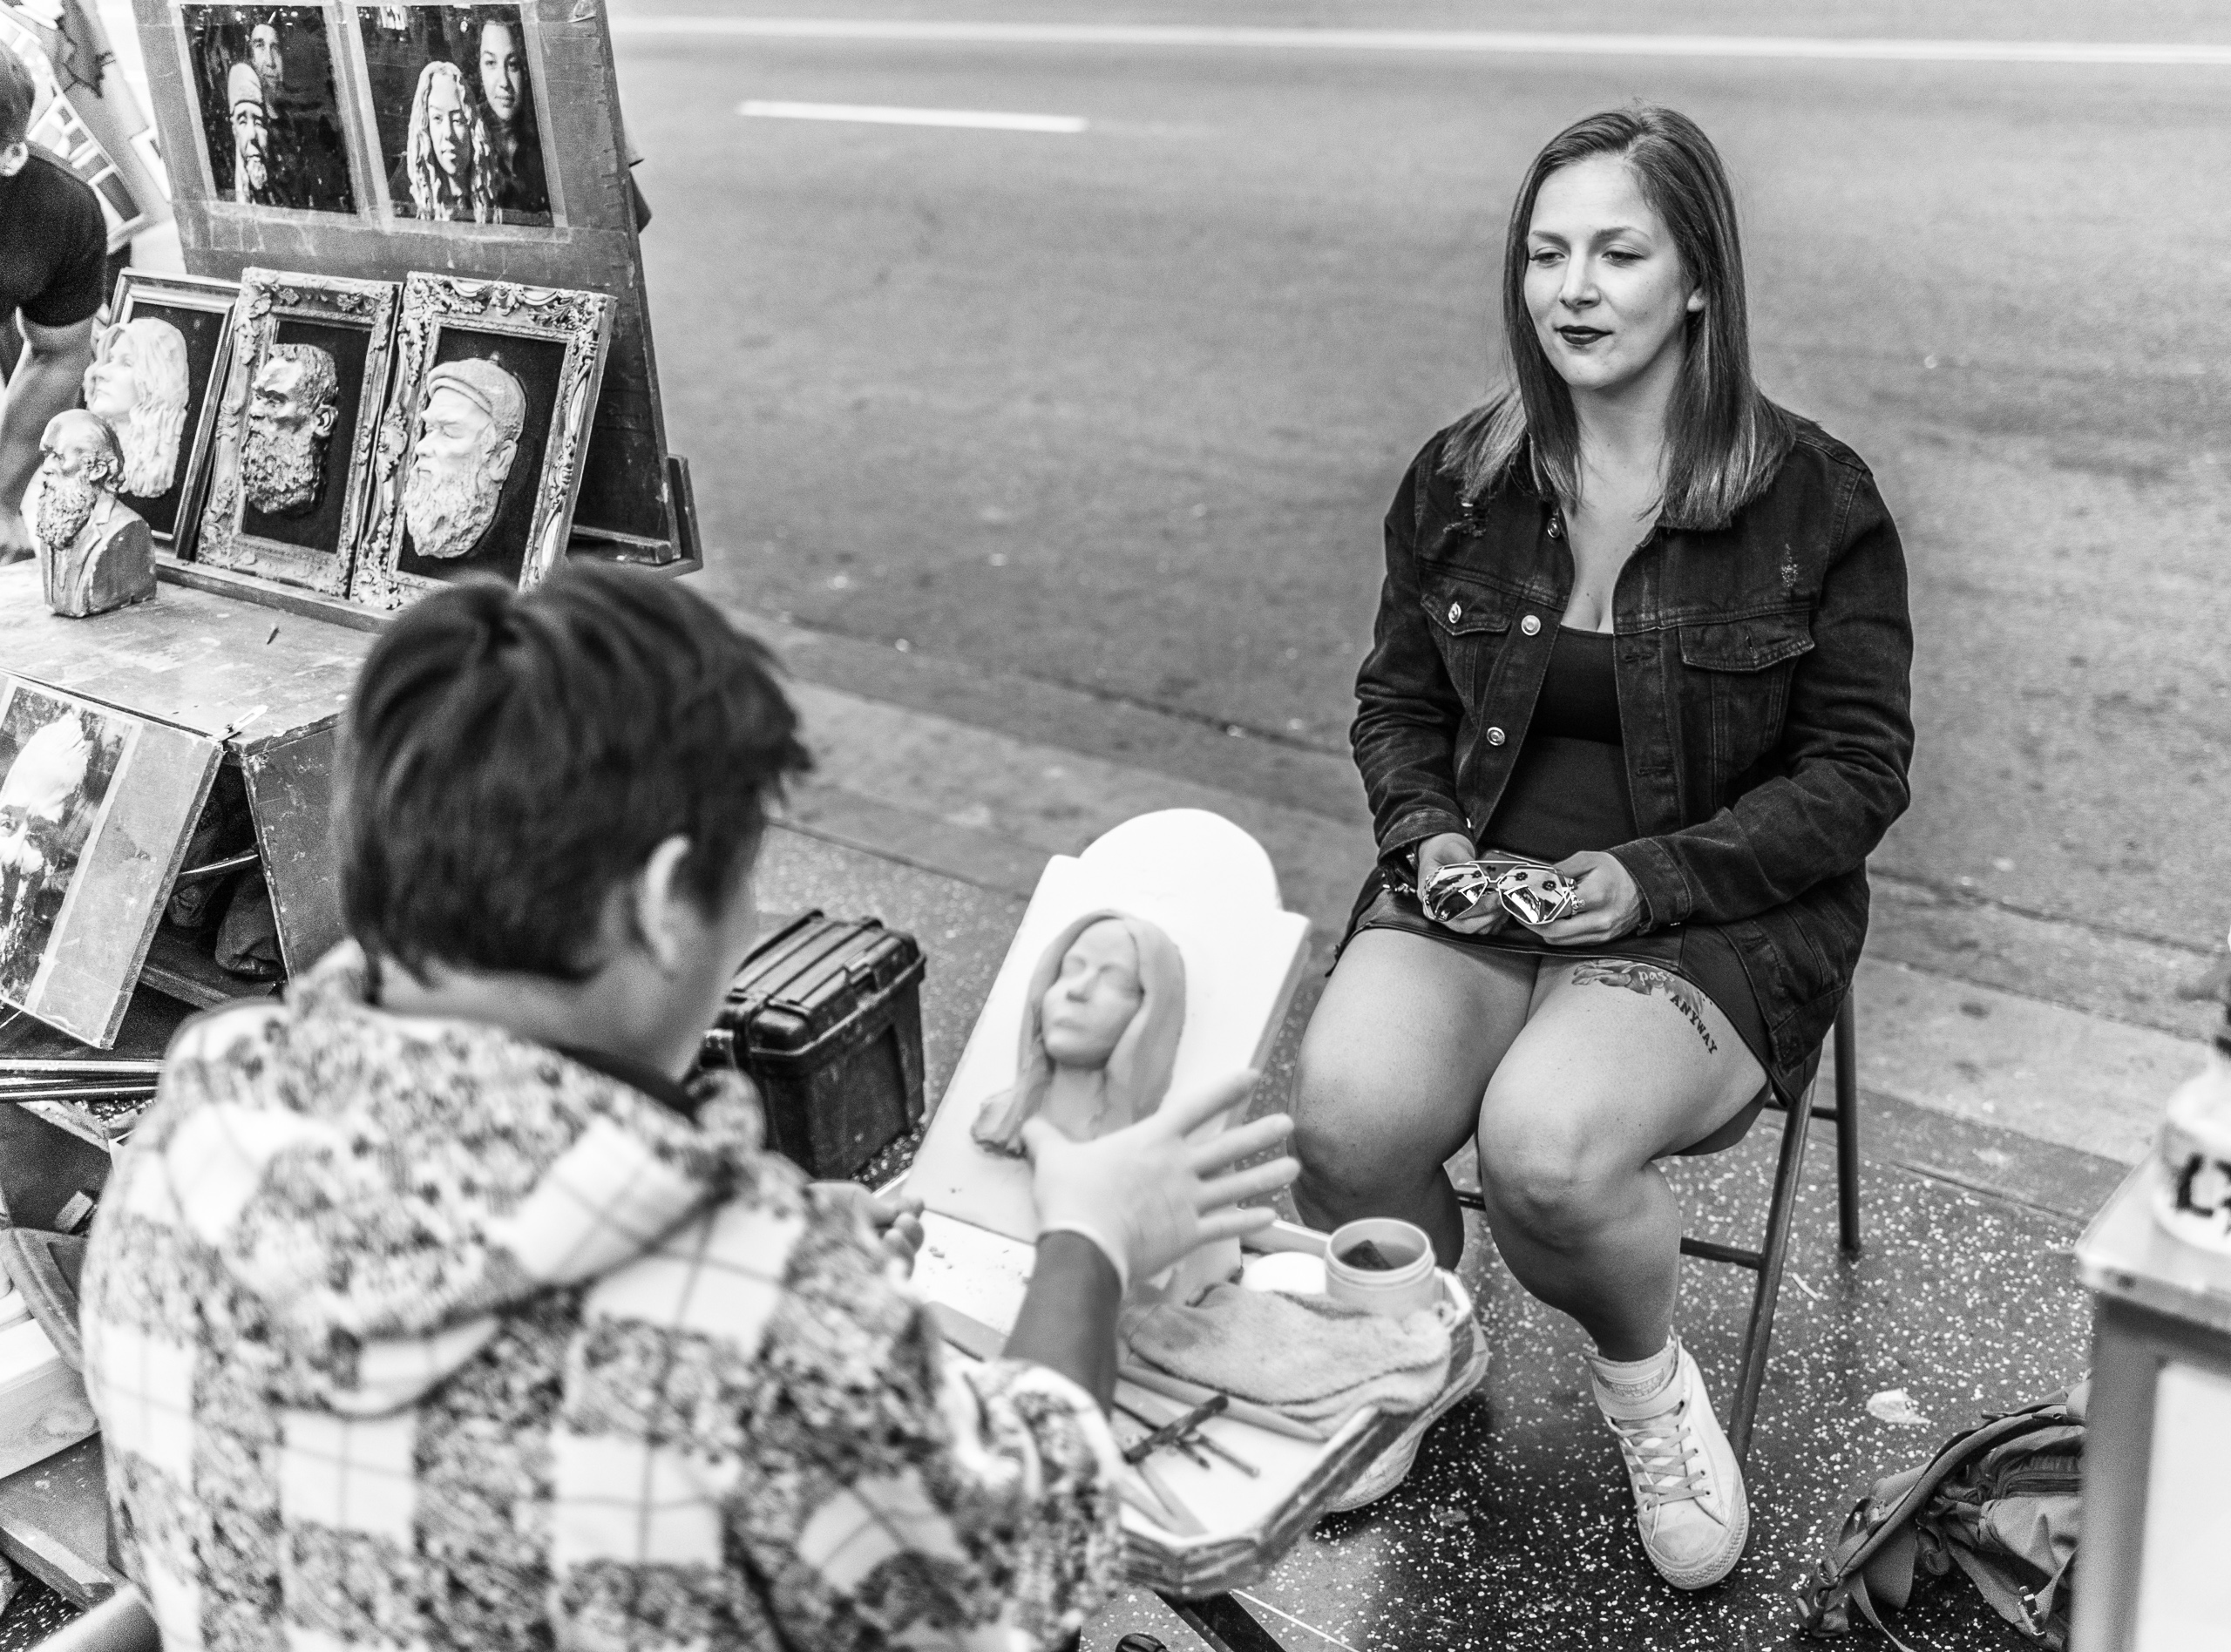 a woman sits in a chair on Hollywood Blvd as a man sculpts a small likeness of her face